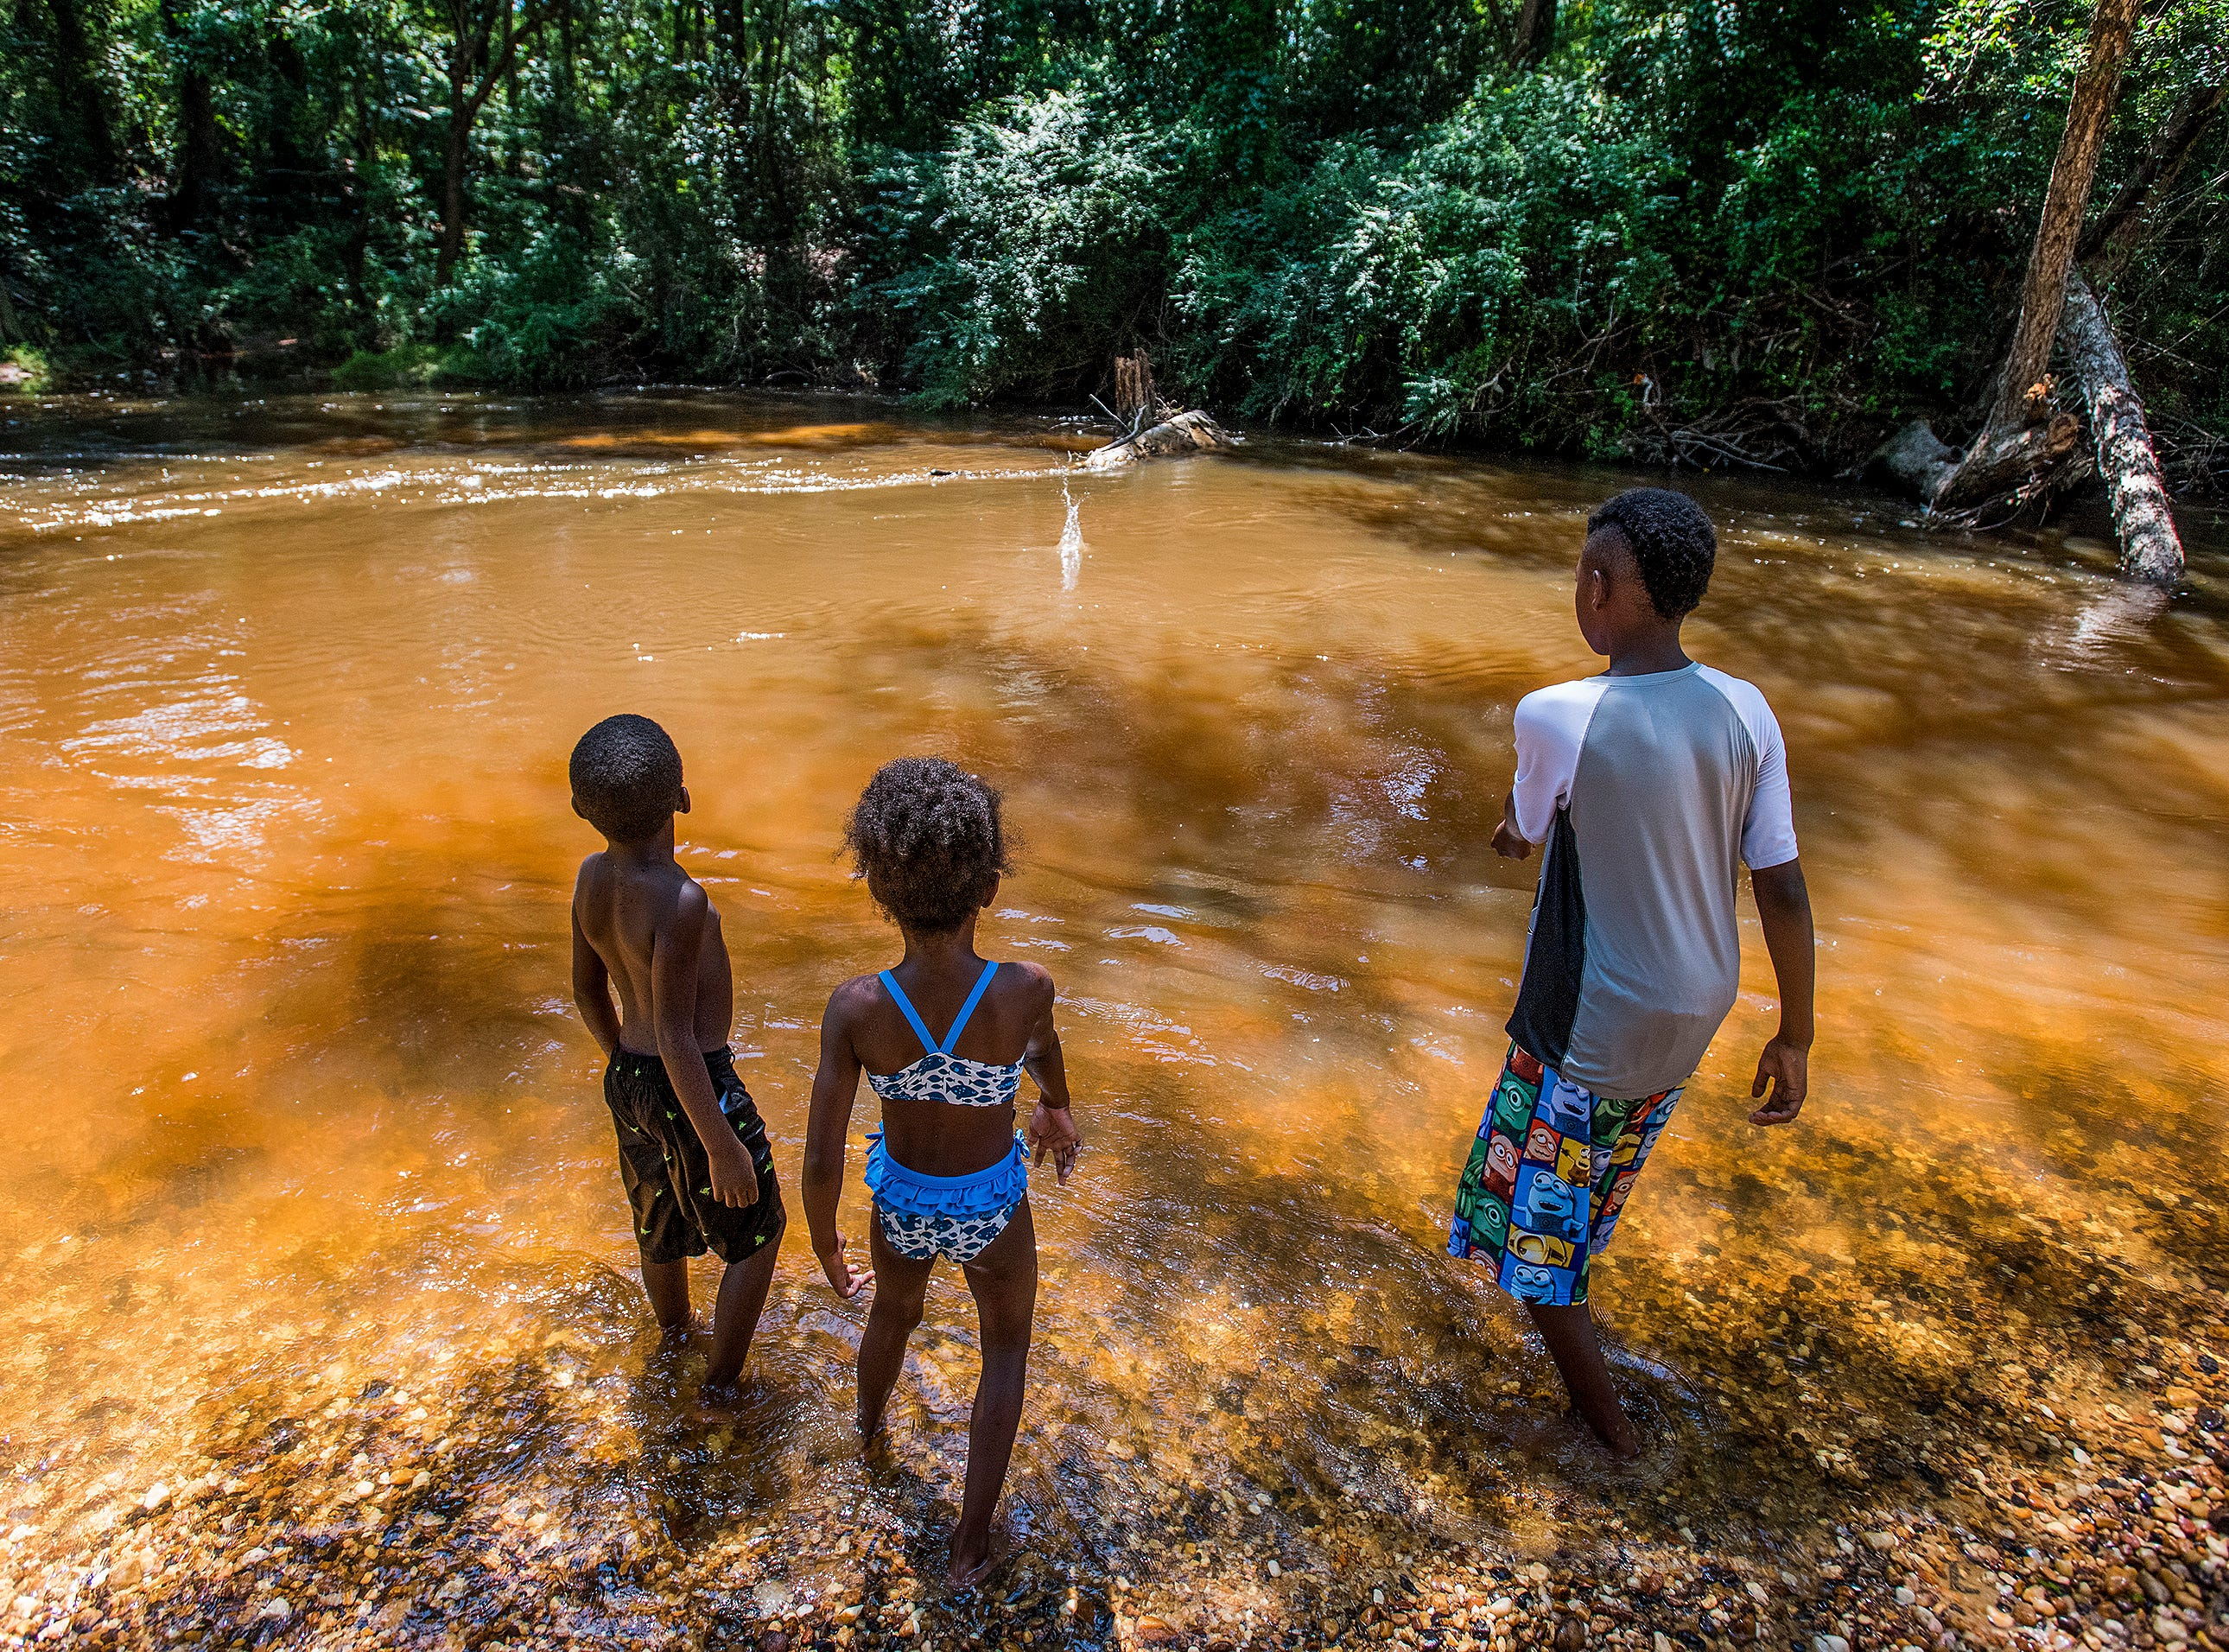 Aiden Dennis, Miracle Taylor and Jeremiah Smiley throw rocks in Autauga Creek in Prattville, Ala., on Saturday, July 21, 2018.